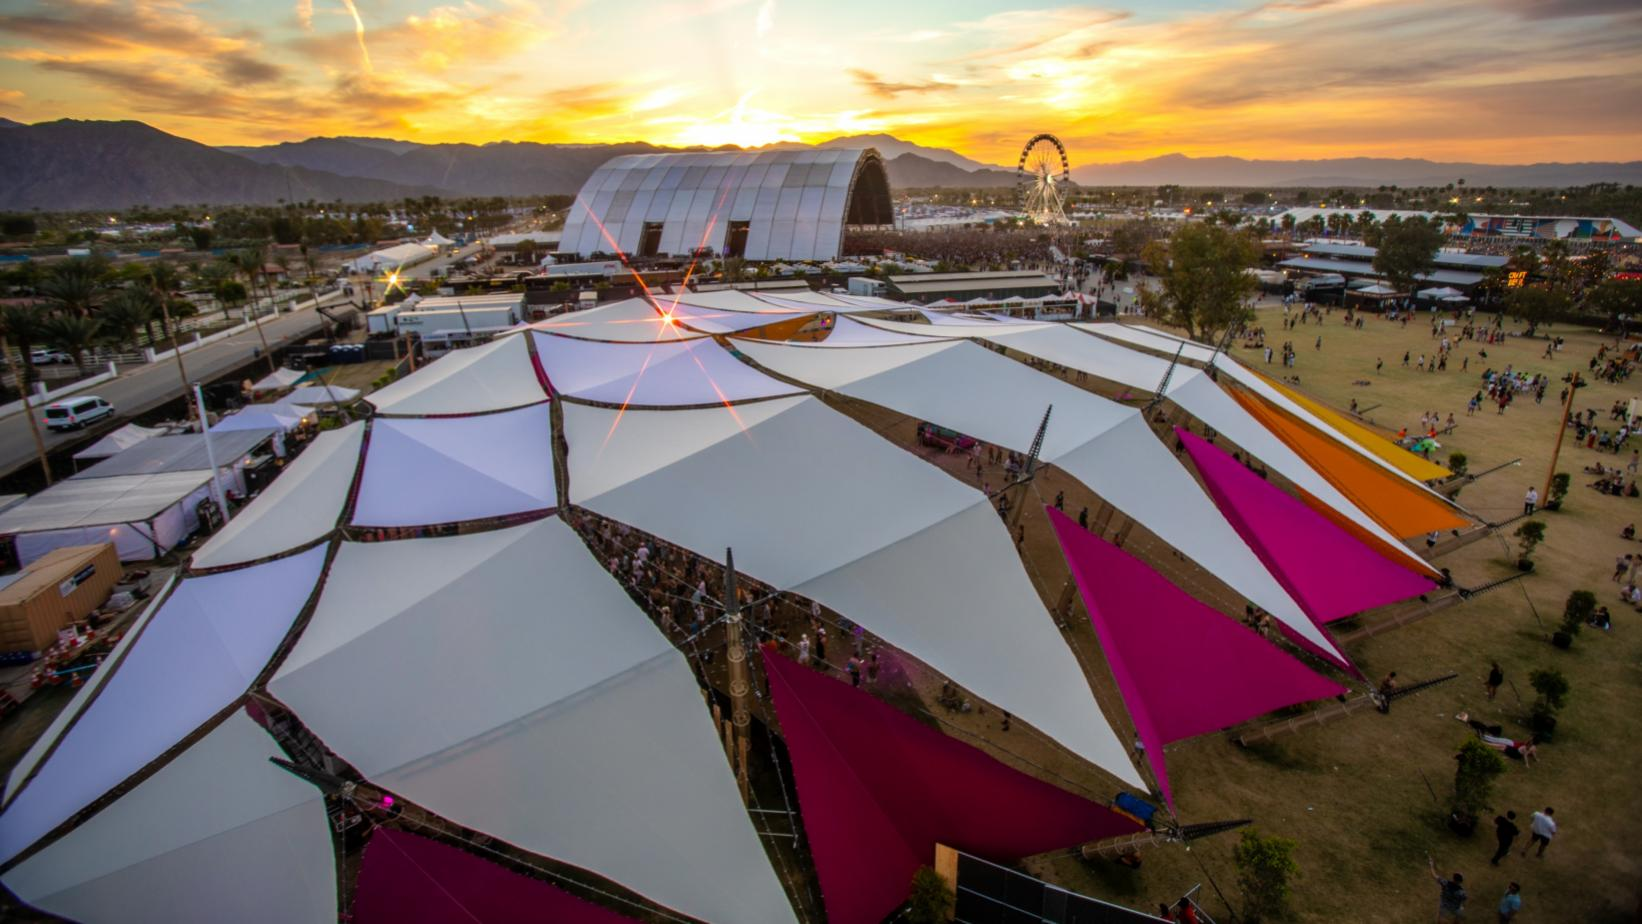 The Do LaB stage at Coachella 2019